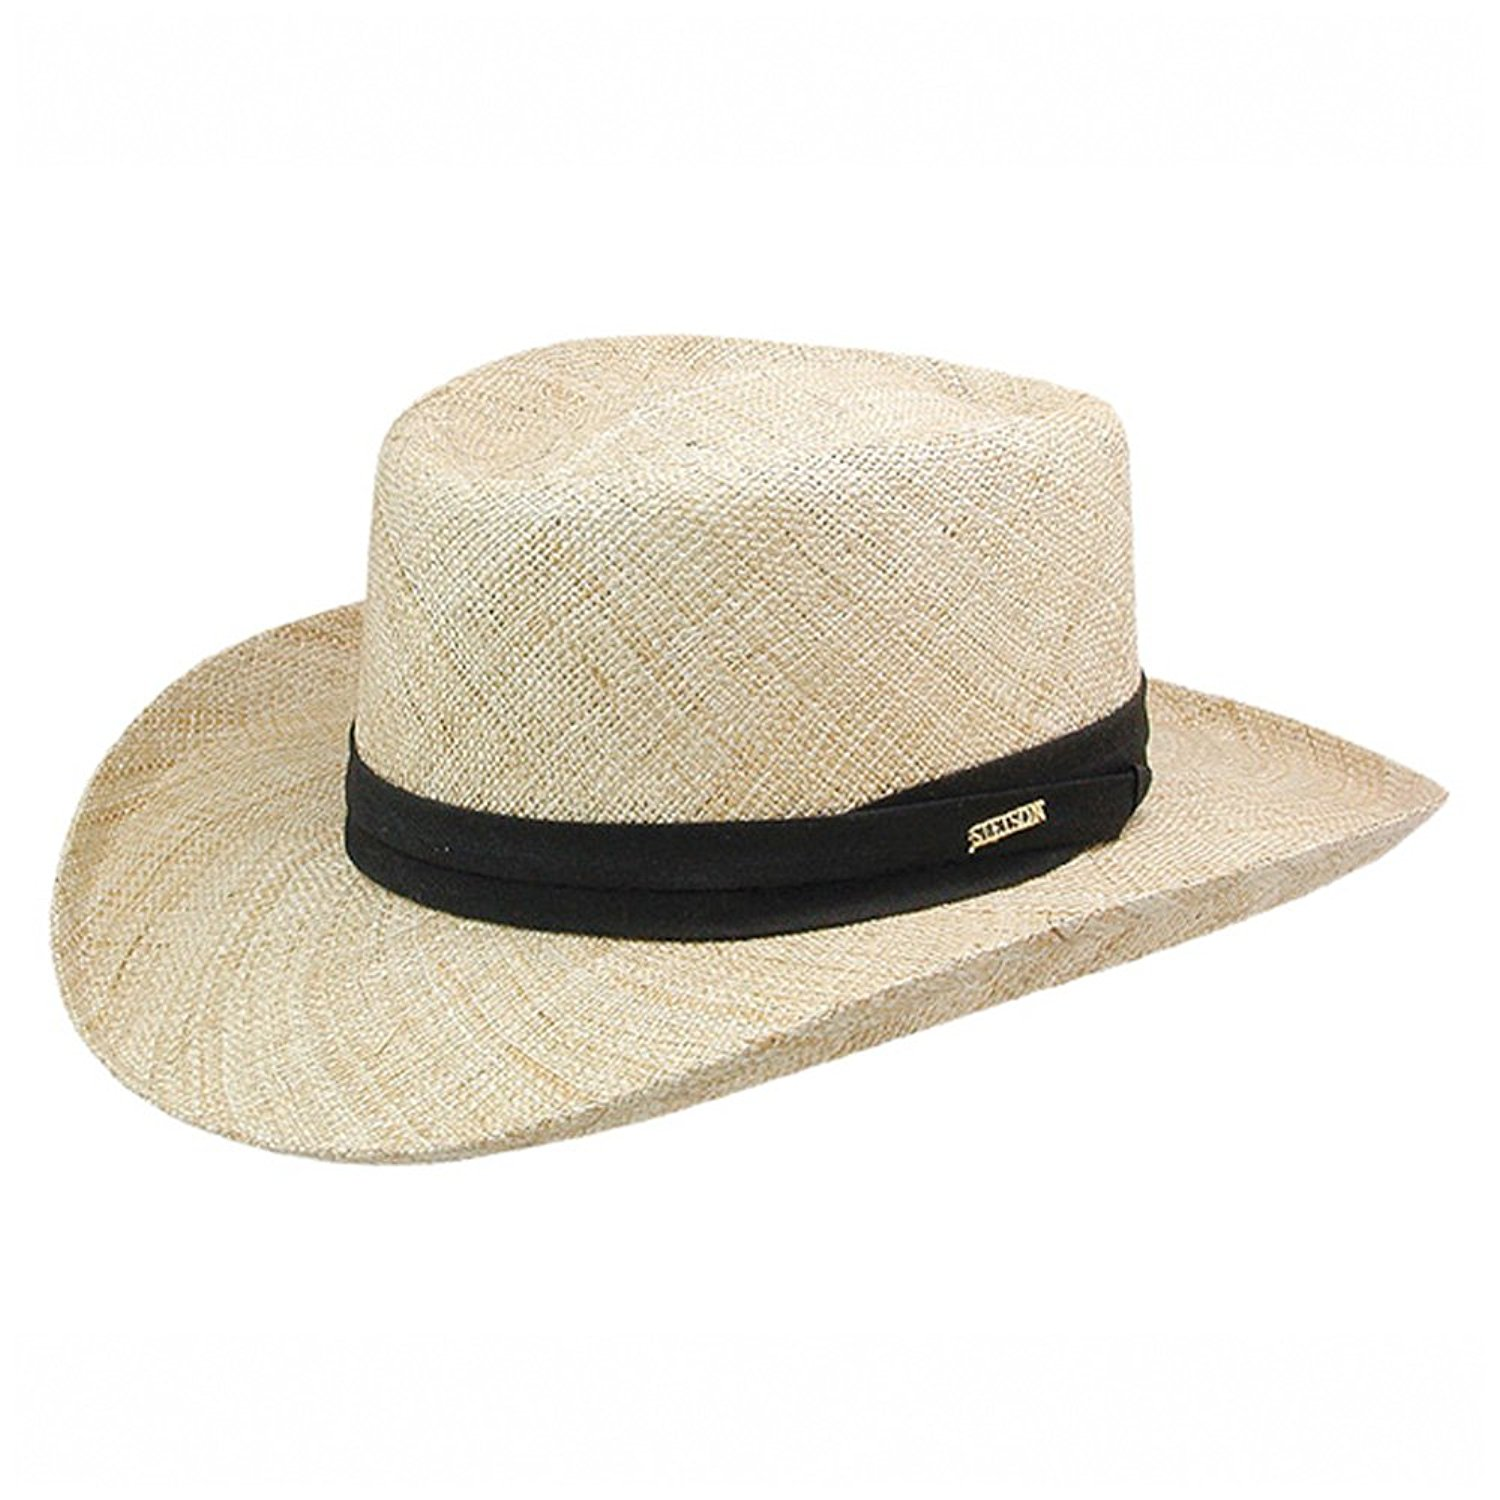 93ee32e86 Buy Stetson Pinto - Seagrass Outdoorsman Hat in Cheap Price on ...